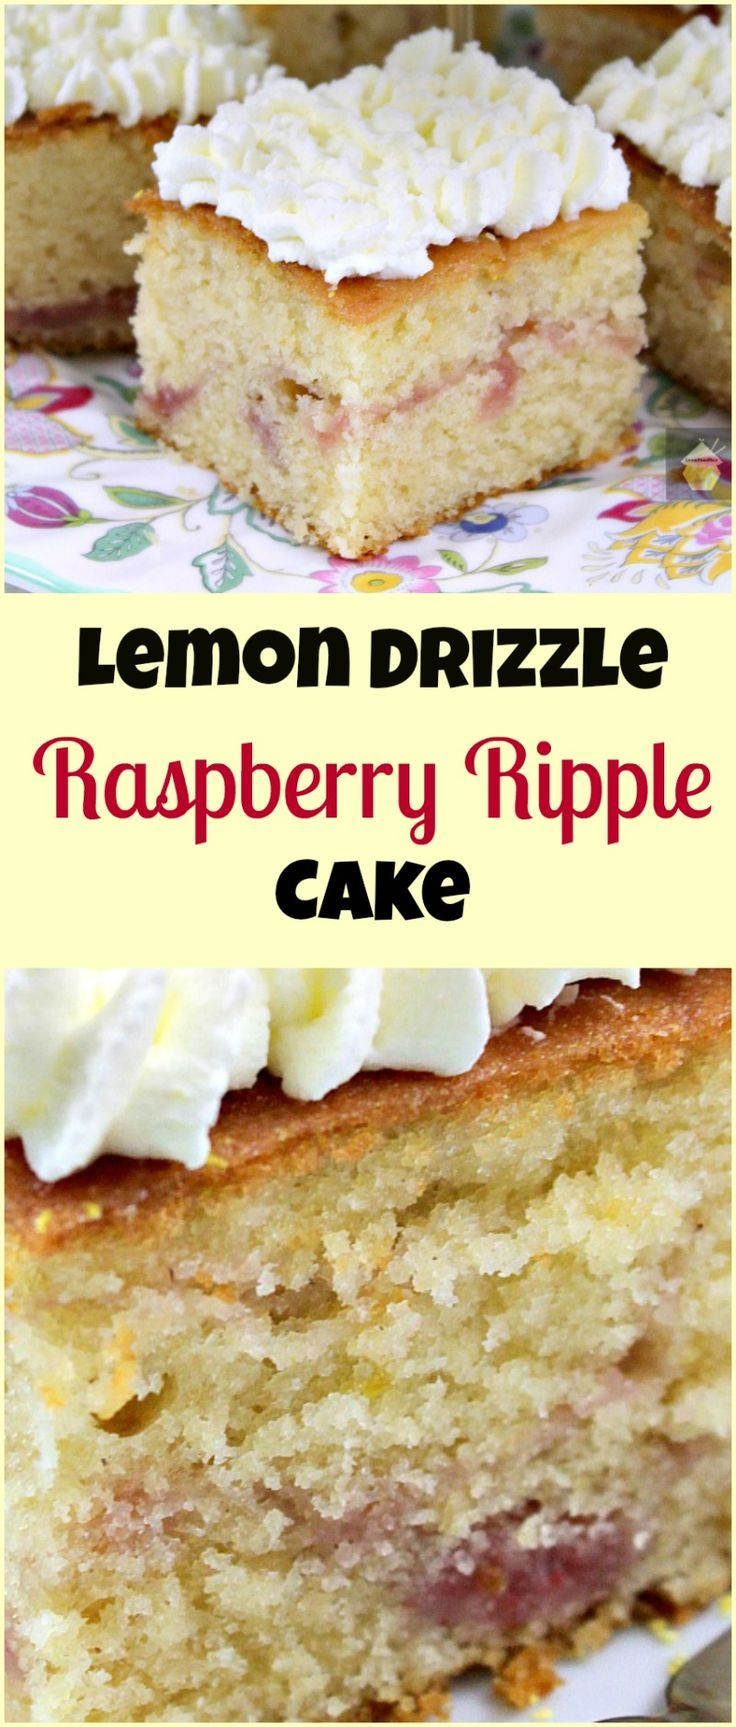 Lemon Drizzle Raspberry Ripple Cake. An easy, soft, moist and great tasting cake, perfect with a cup of tea! #easyrecipe